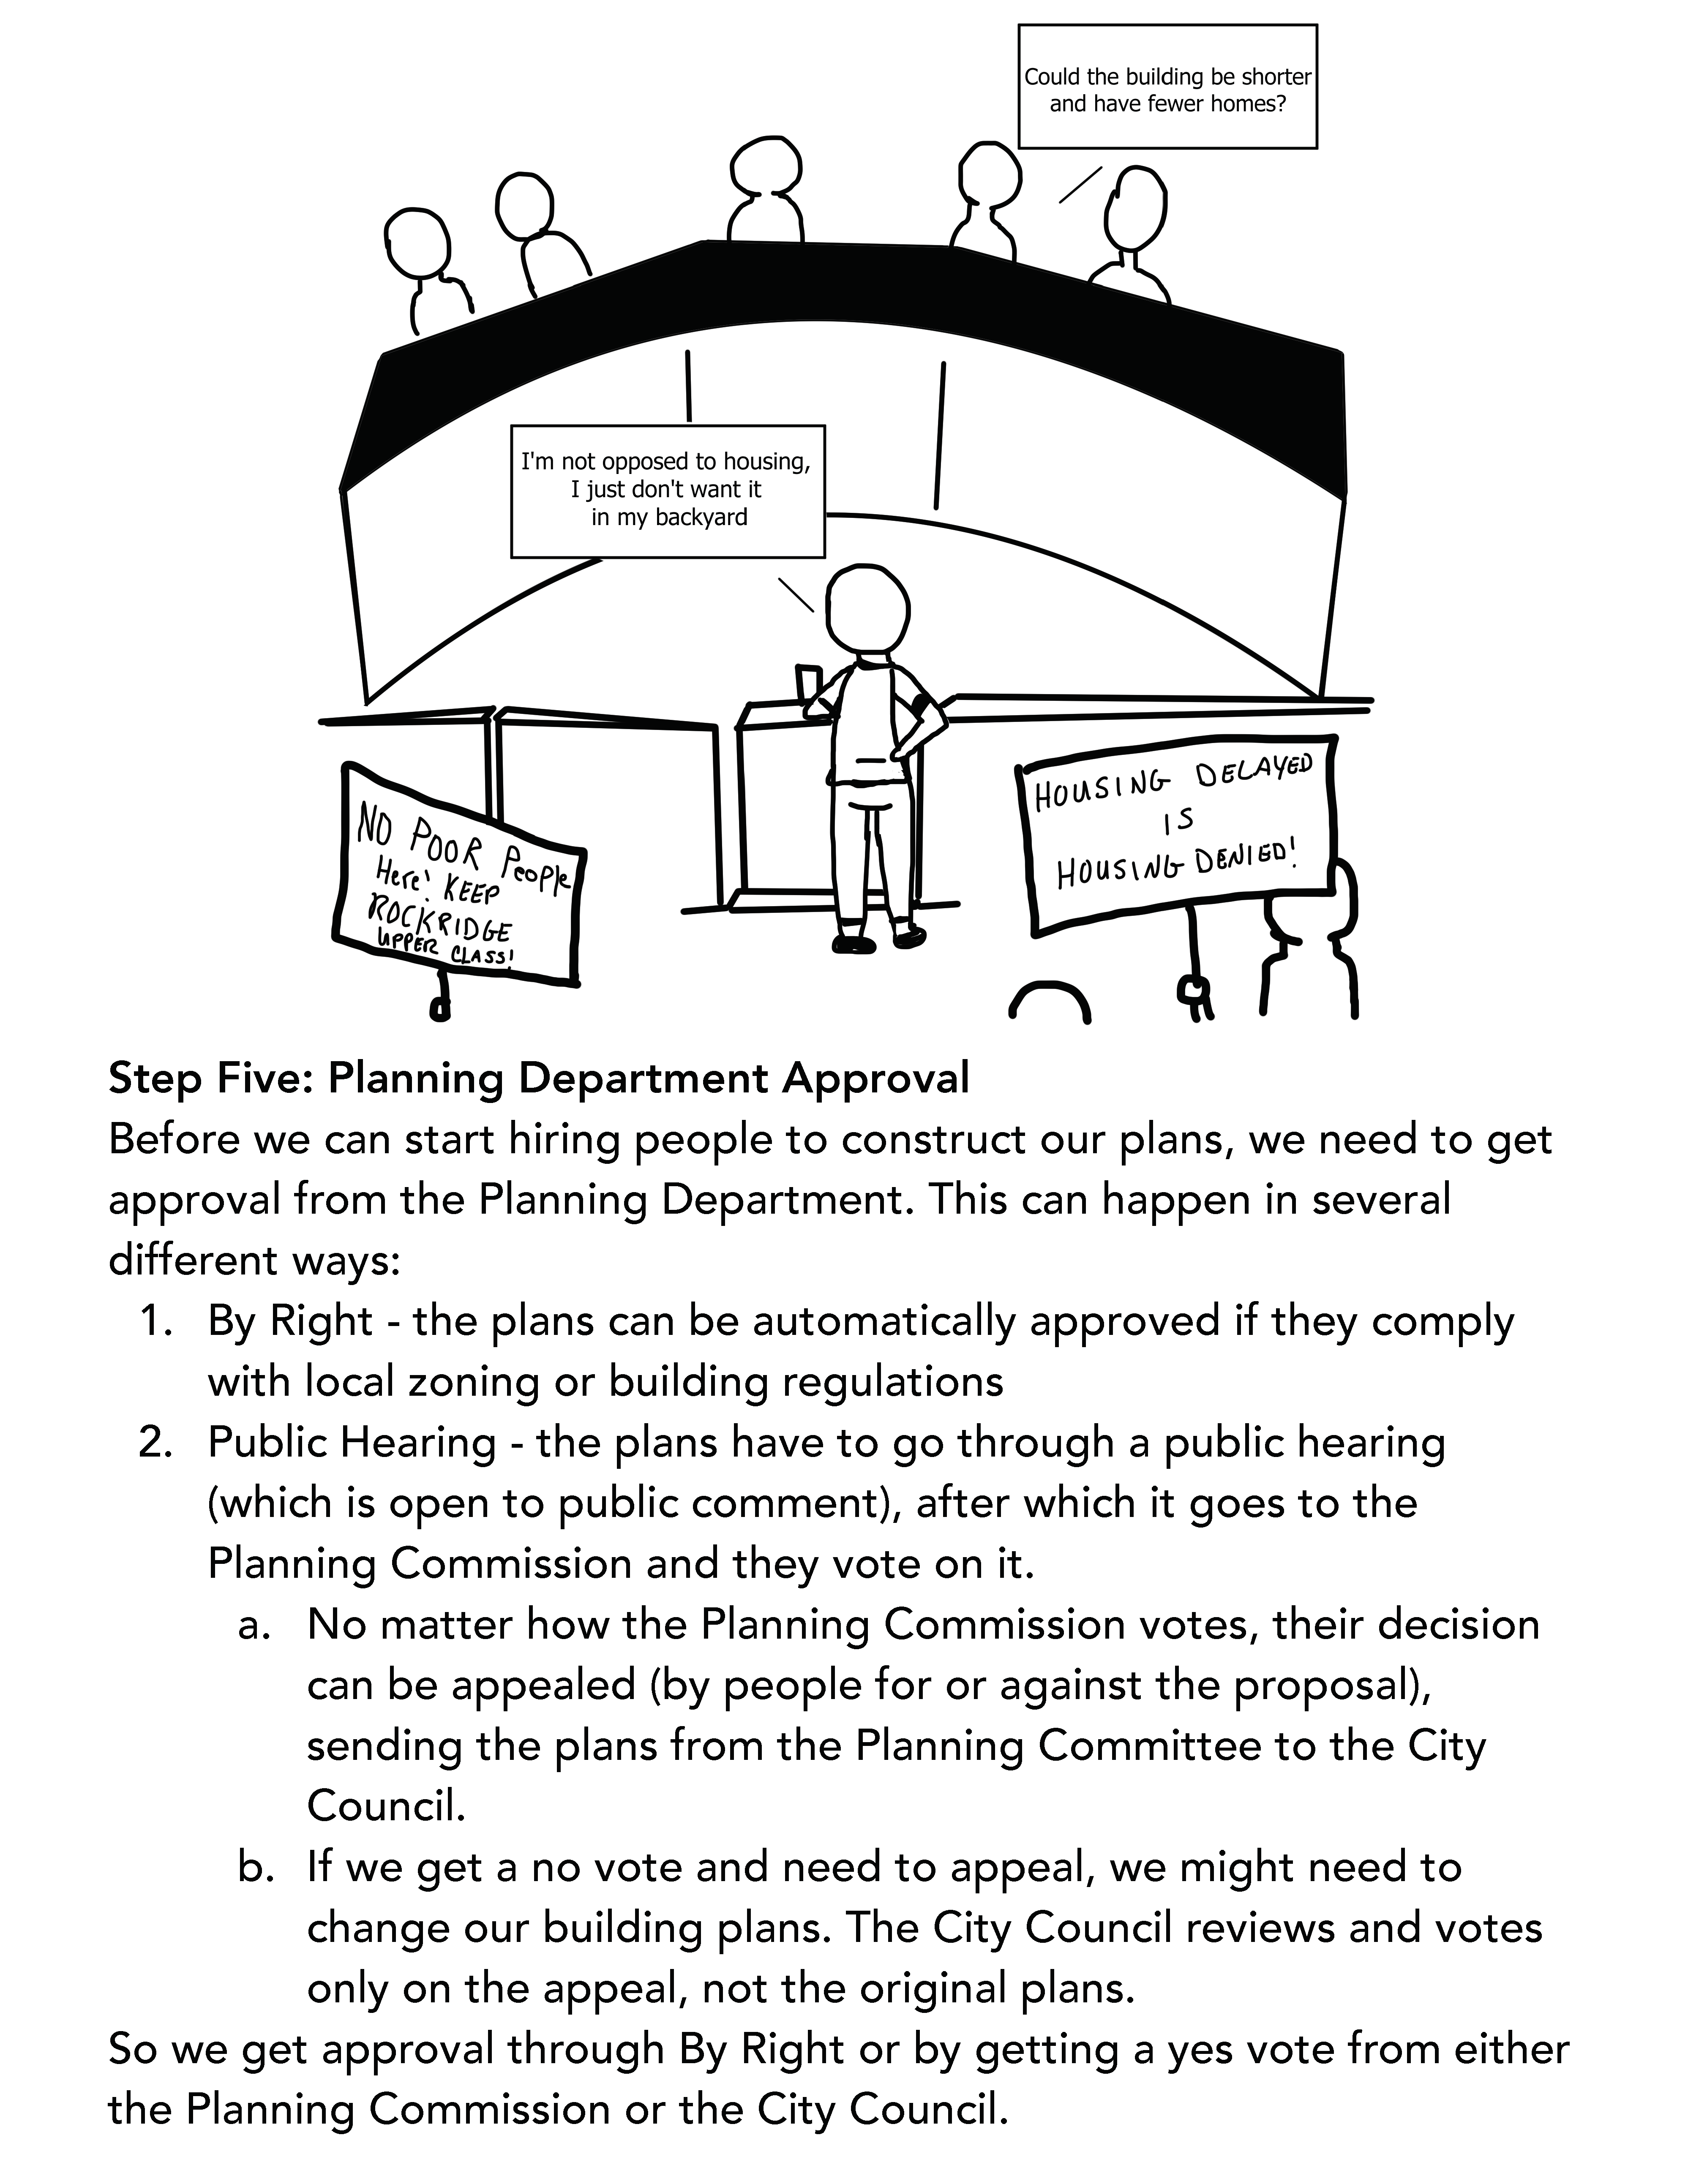 Step Five: Planning Department Approval Before we can start hiring people to construct our plans, we need to get approval from the Planning Department. This can happen in several different ways: 1. By Right - the plans can be automatically approved if they comply with local zoning or building regulations 2. Public Hearing - the plans have to go through a public hearing (which is open to public comment), after which it goes to the Planning Commission and they vote on it. a. No matter how the Planning Commission votes, their decision can be appealed (by people for or against the proposal), sending the plans from the Planning Committee to the City Council. b. If we get a no vote and need to appeal, we might need to change our building plans. The City Council reviews and votes only on the appeal, not the original plans. So we get approval through By Right or by getting a yes vote from either the Planning Commission or the City Council.